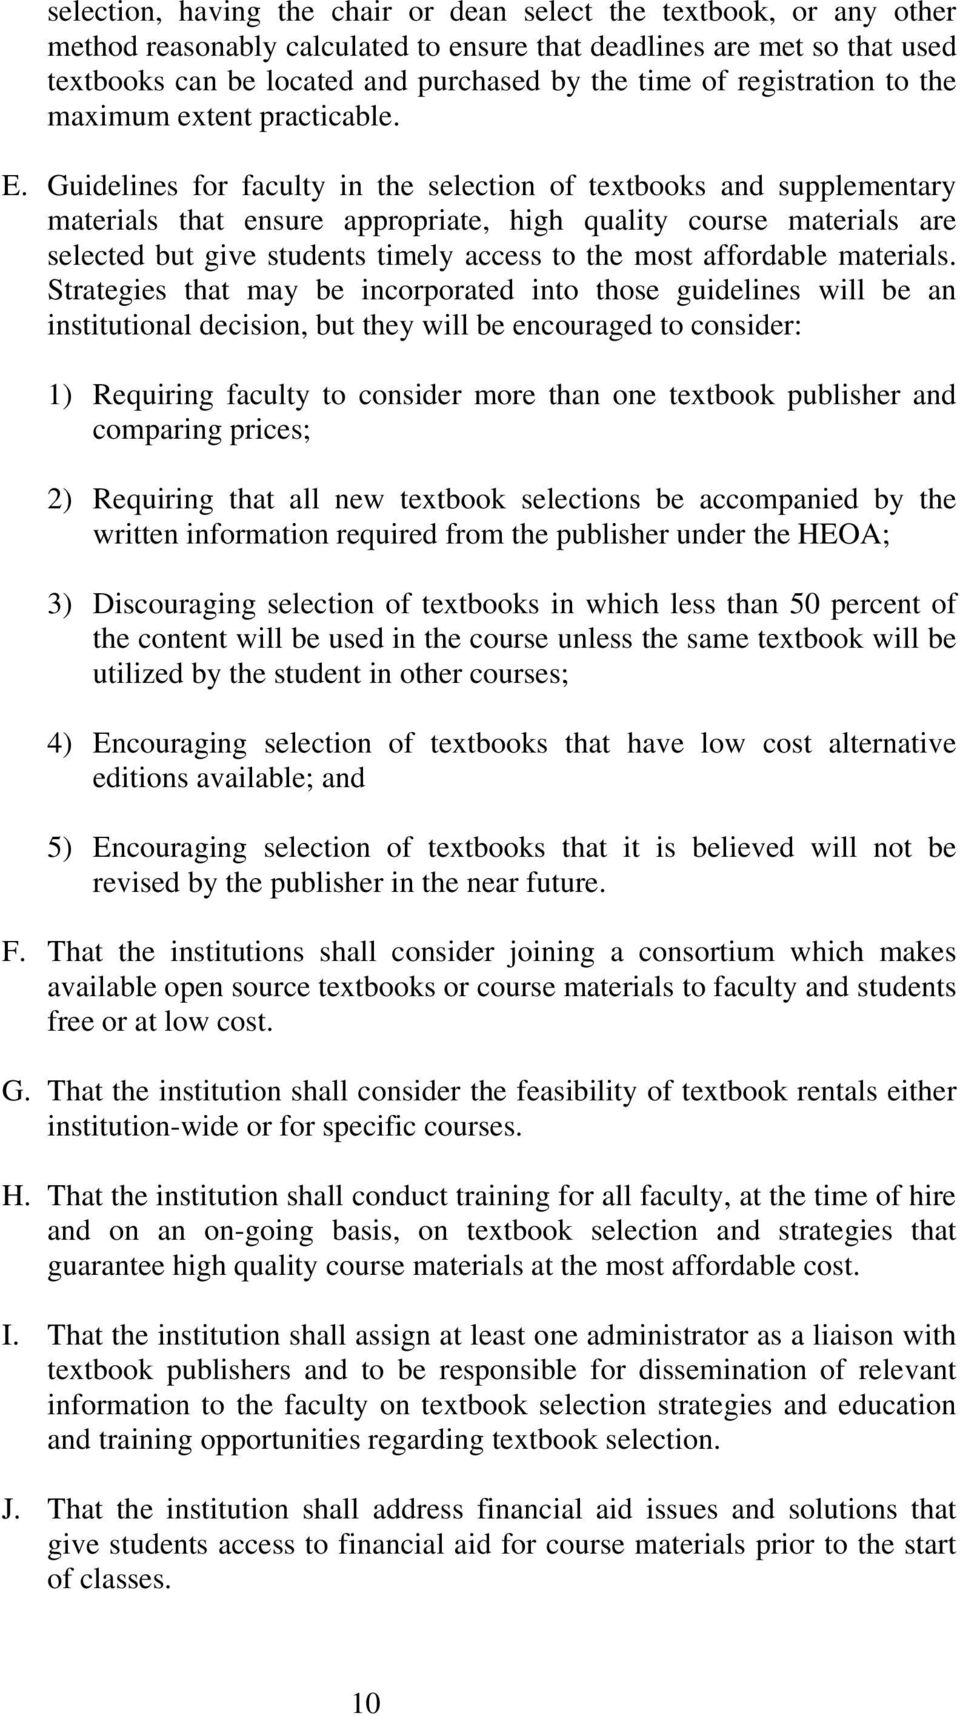 Guidelines for faculty in the selection of textbooks and supplementary materials that ensure appropriate, high quality course materials are selected but give students timely access to the most